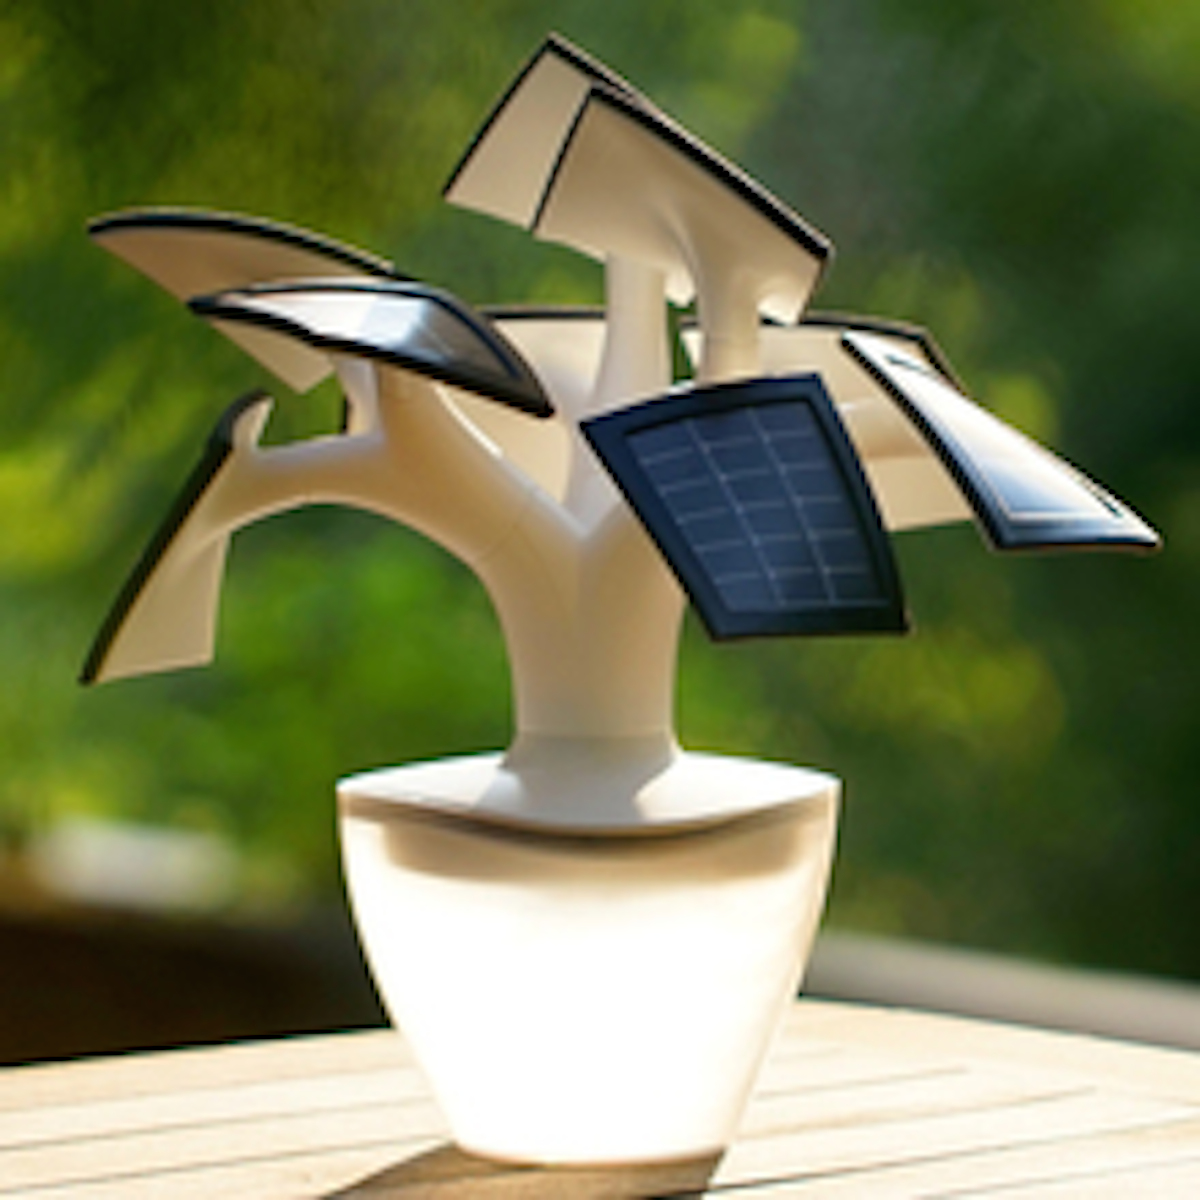 electree mini solarb umchen im blumentopf ist lampe und ladestation f rderland. Black Bedroom Furniture Sets. Home Design Ideas